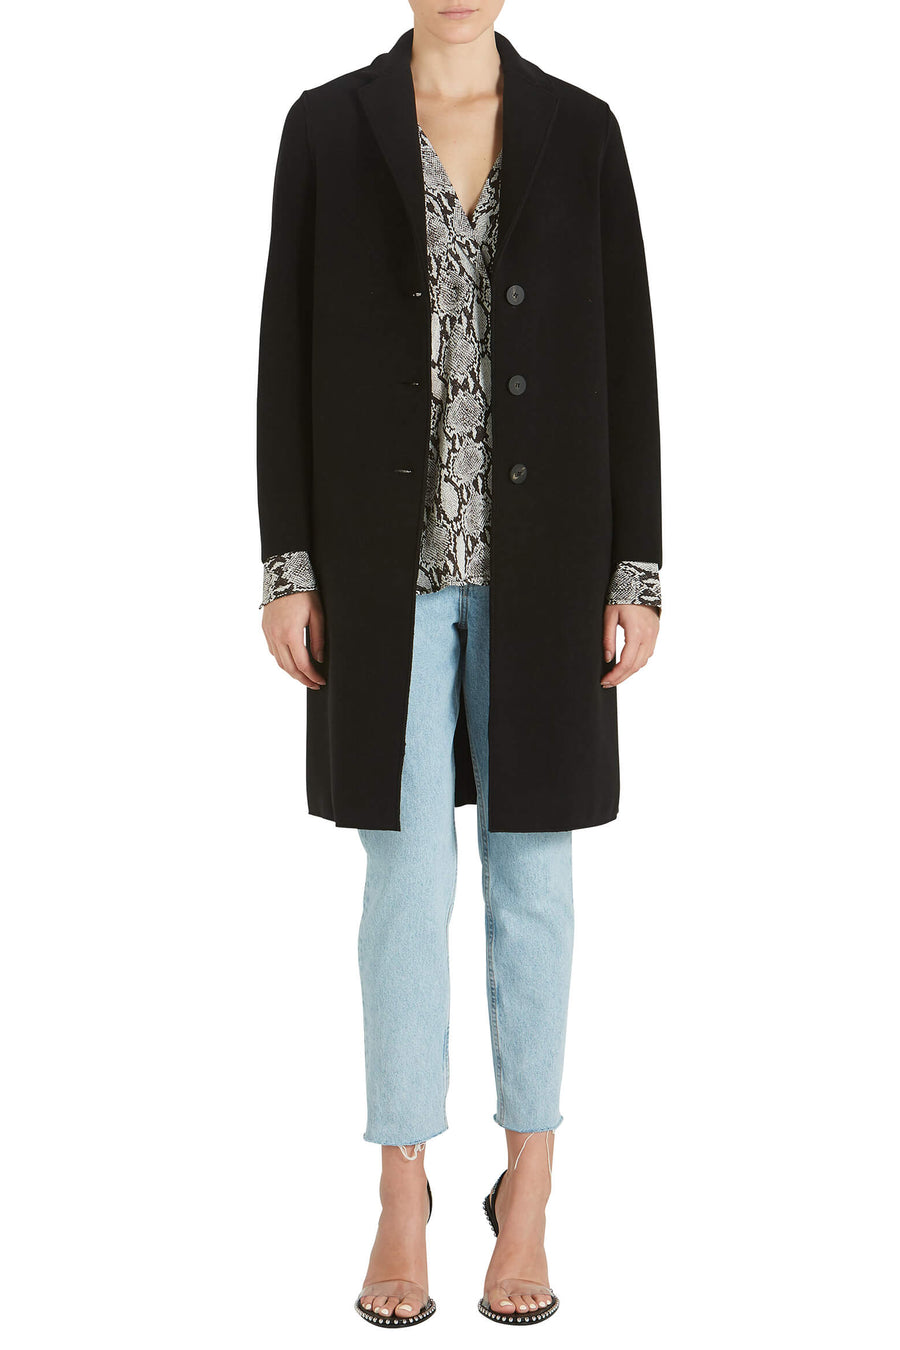 Harris Wharf London Woman Overcoat Polaire from The New Trend